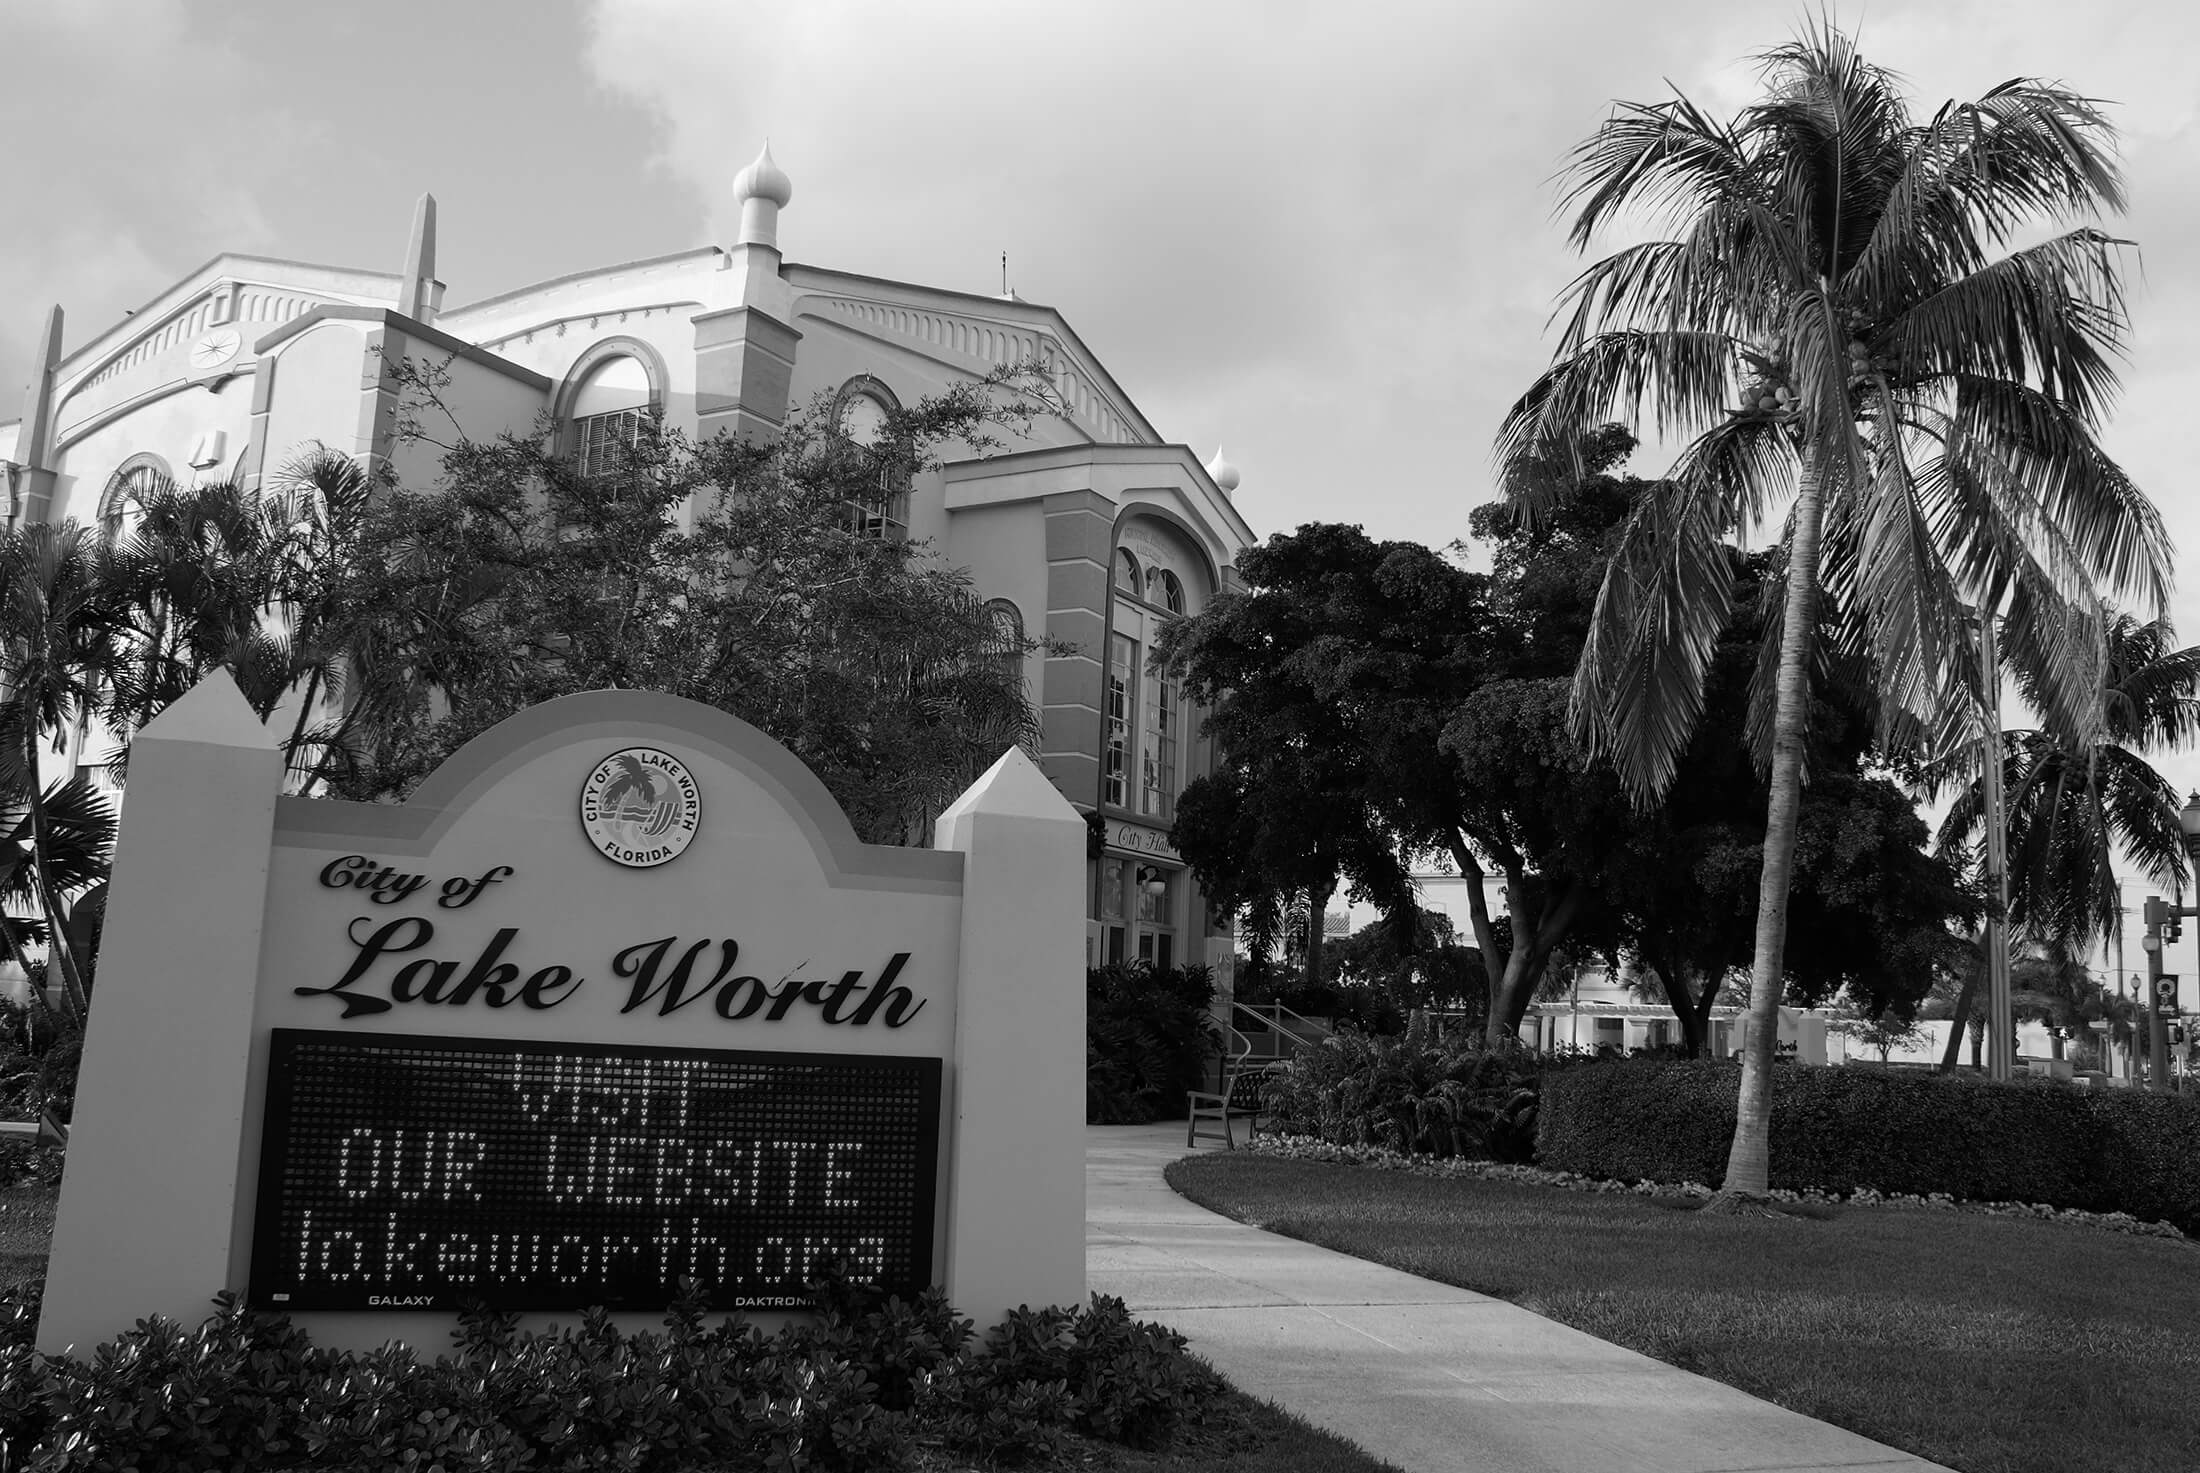 Lake Worth SEO | Florida SEO Services